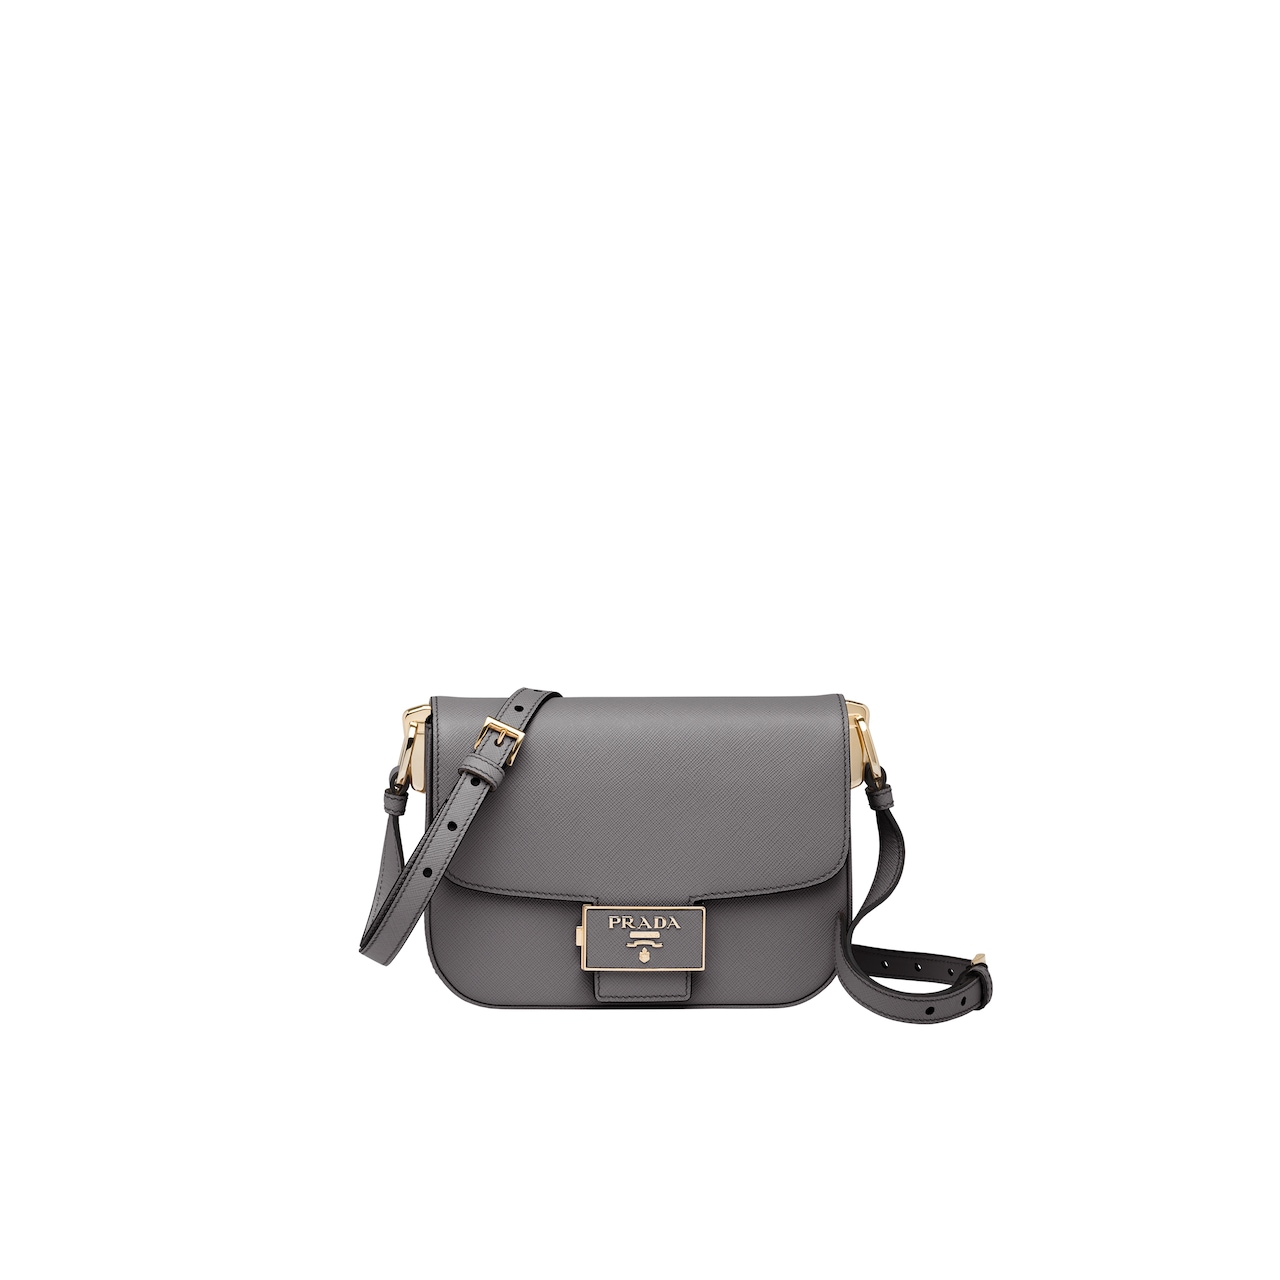 Prada Prada Emblème Saffiano leather bag 1